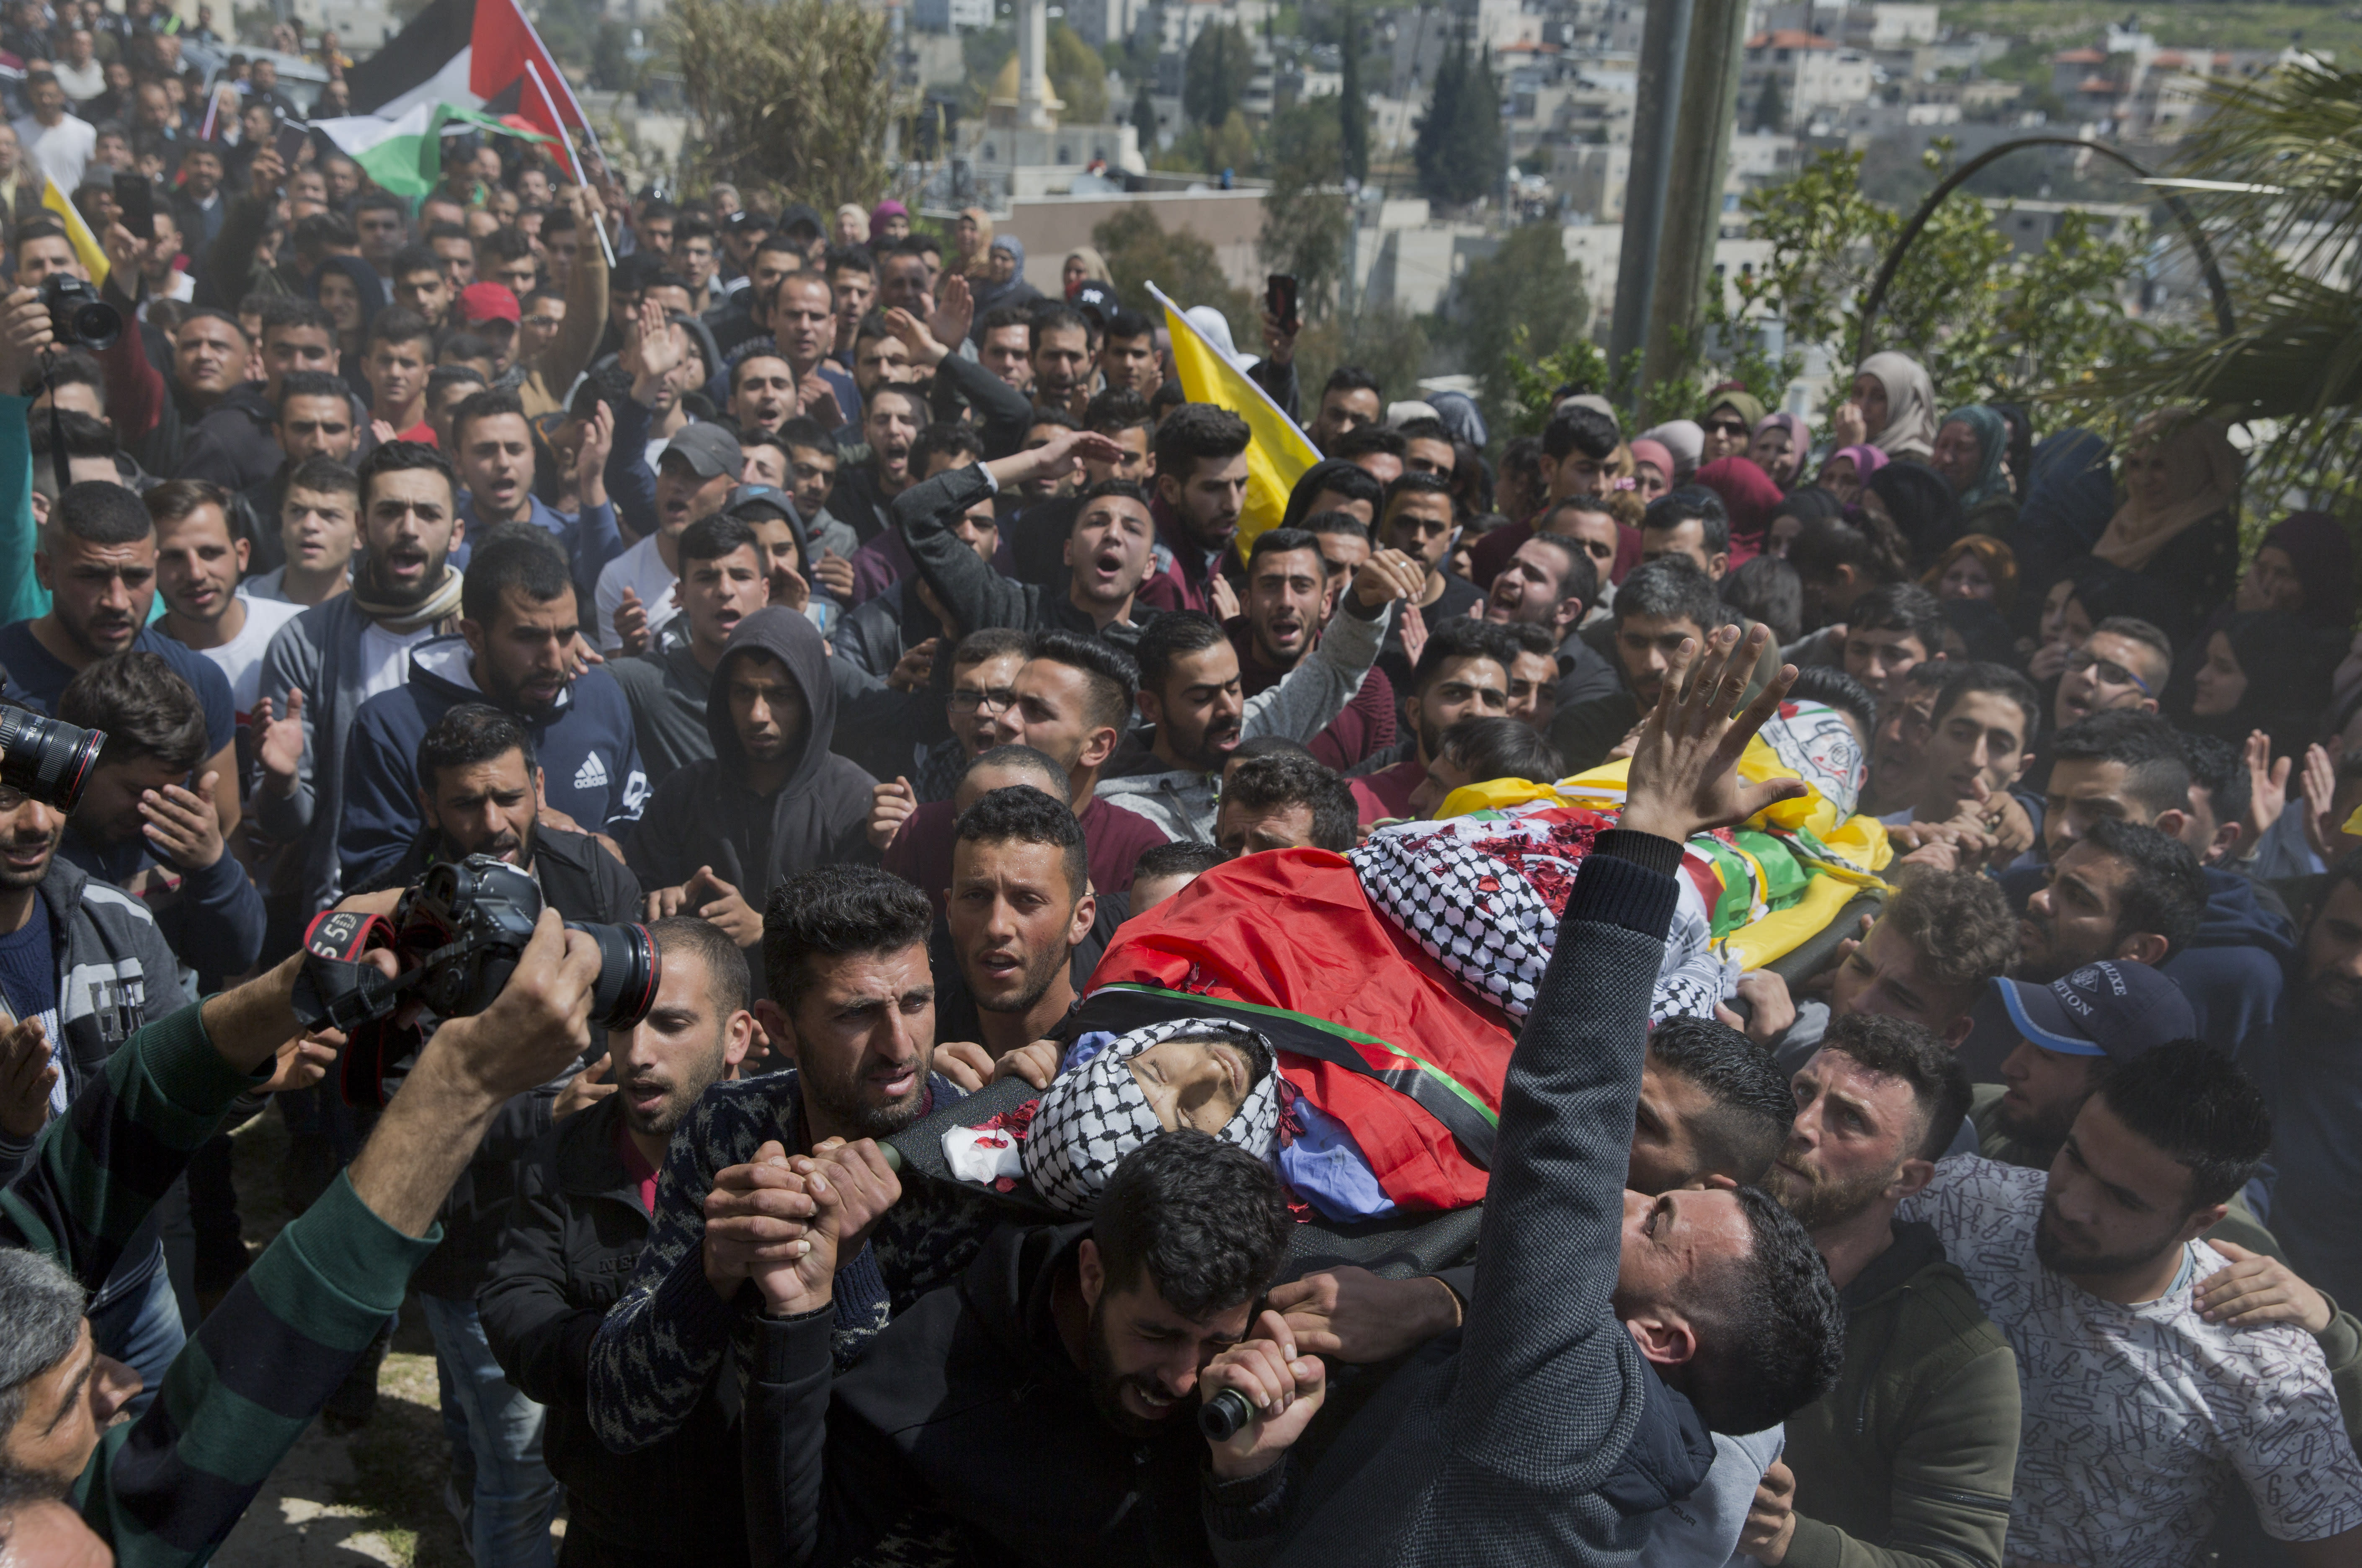 FILE - In this March 21, 2019 file photo, Palestinian mourners carry the body of Ahmad Manasra, during his funeral in the West Bank village of Wad Fokin, near Bethlehem. In August 2020, Israeli military prosecutors offered three months of community service to a soldier who shot and killed Manasra, an unarmed Palestinian man who exited his vehicle to assist a second motorist who had also been shot -- in a case that has drawn renewed attention to a justice system that Palestinians and human rights activists say has created an atmosphere of impunity. The deal is now being reviewed by the Israeli Supreme Court. (AP Photo/Nasser Nasser, File)